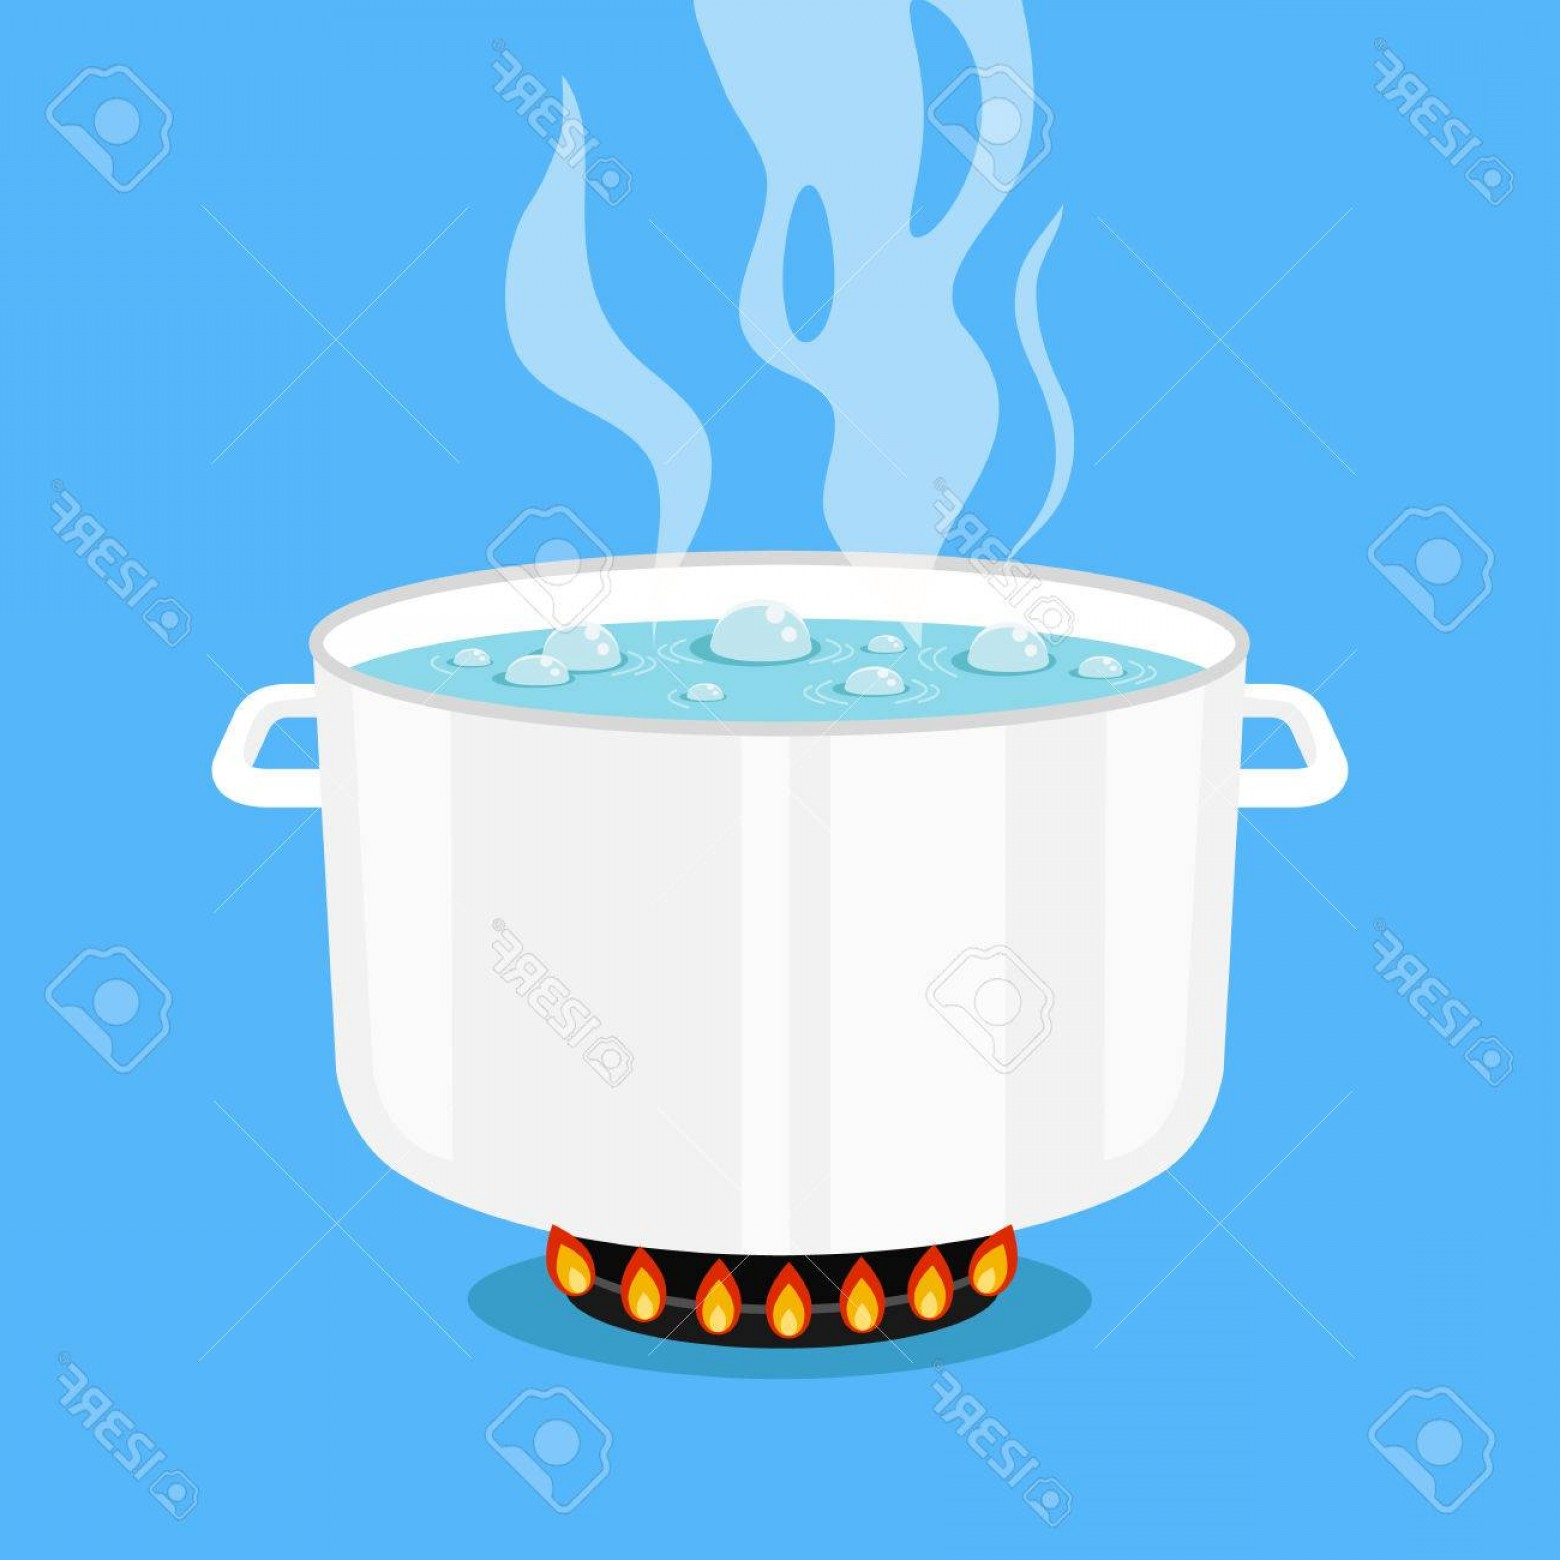 Big Cook With Cooking Pot Vector: Photostock Vector Boiling Water In Pan White Cooking Pot On Stove With Water And Steam Flat Design Graphic Elements Ve